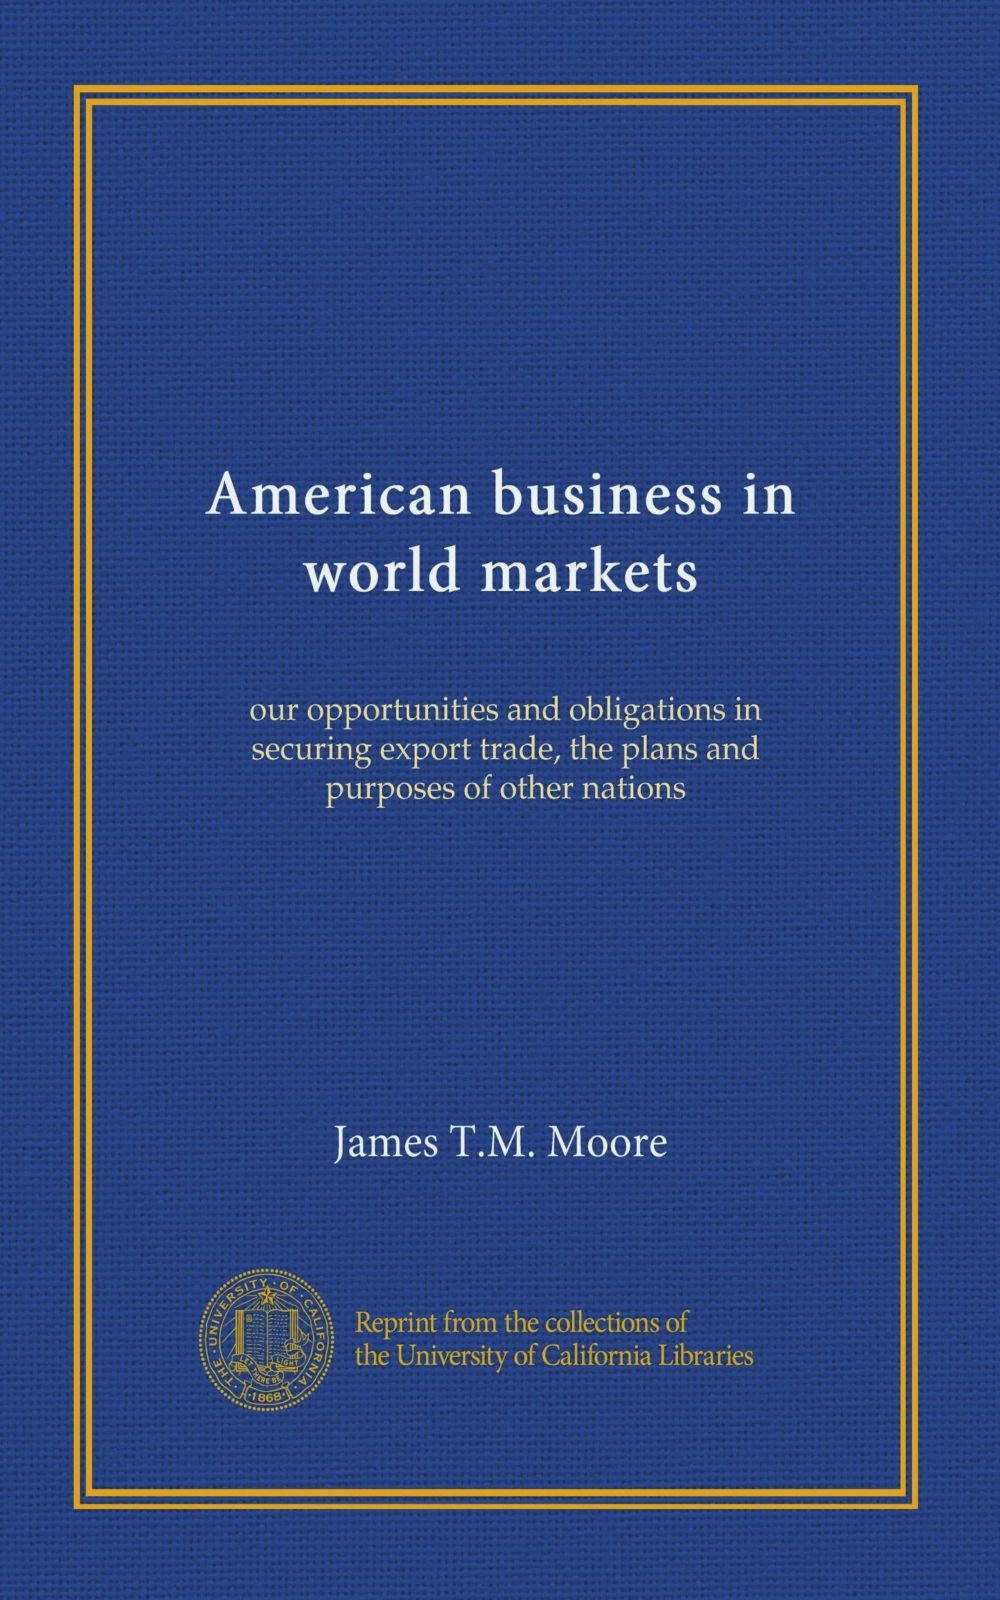 American business in world markets: our opportunities and obligations in securing export trade, the plans and purposes of other nations pdf epub